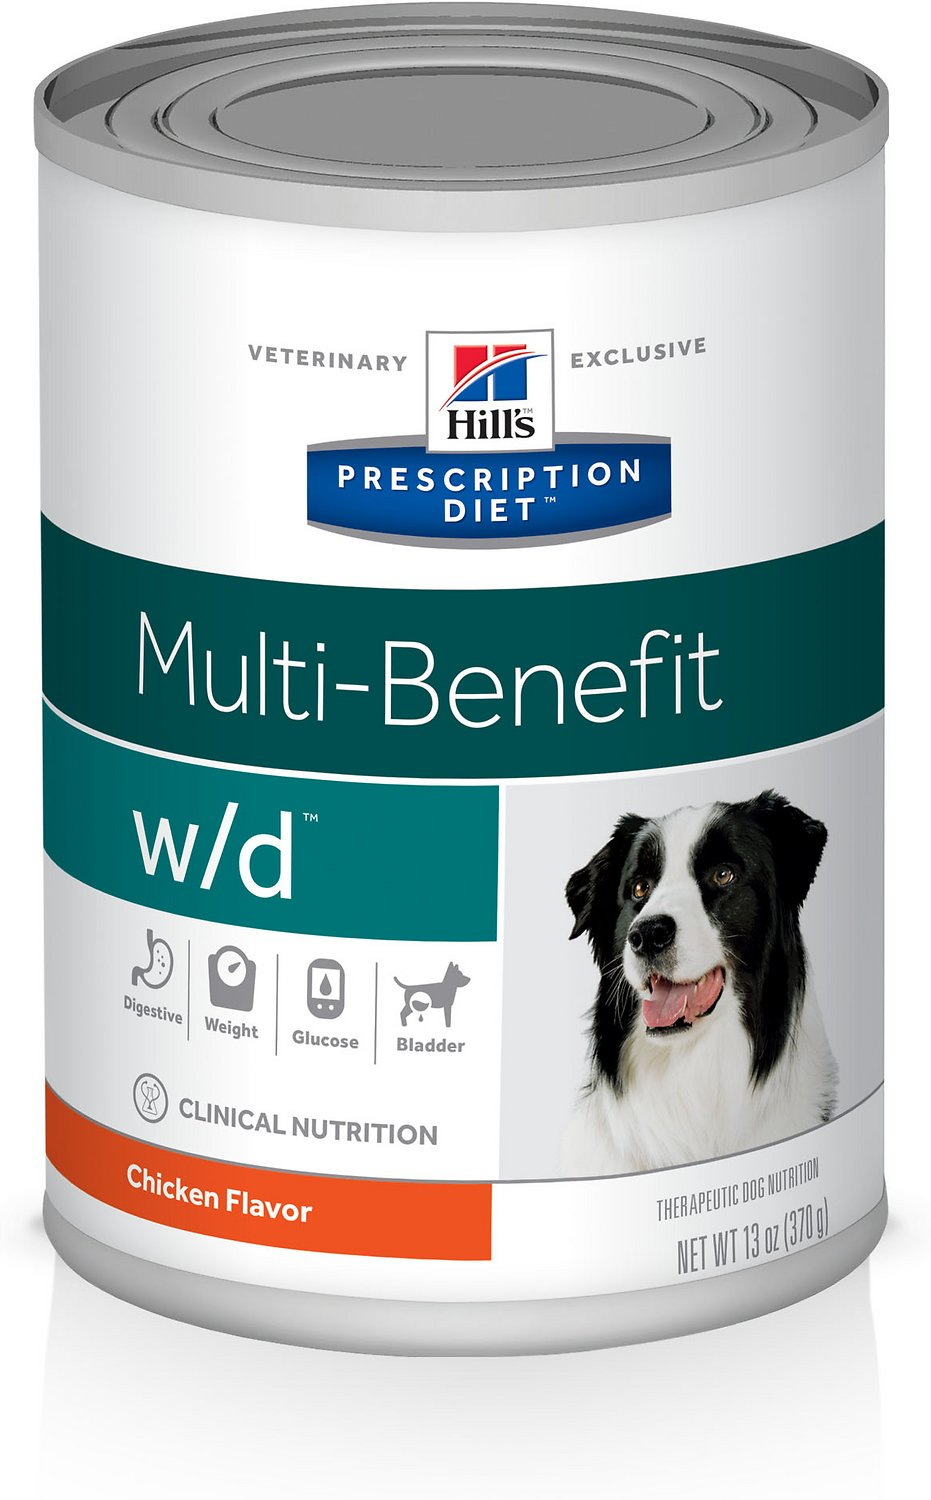 Hill's Prescription Diet w/d Multi-Benefit Digestive, Weight, Glucose, Urinary Management with Chicken Canned Dog Food